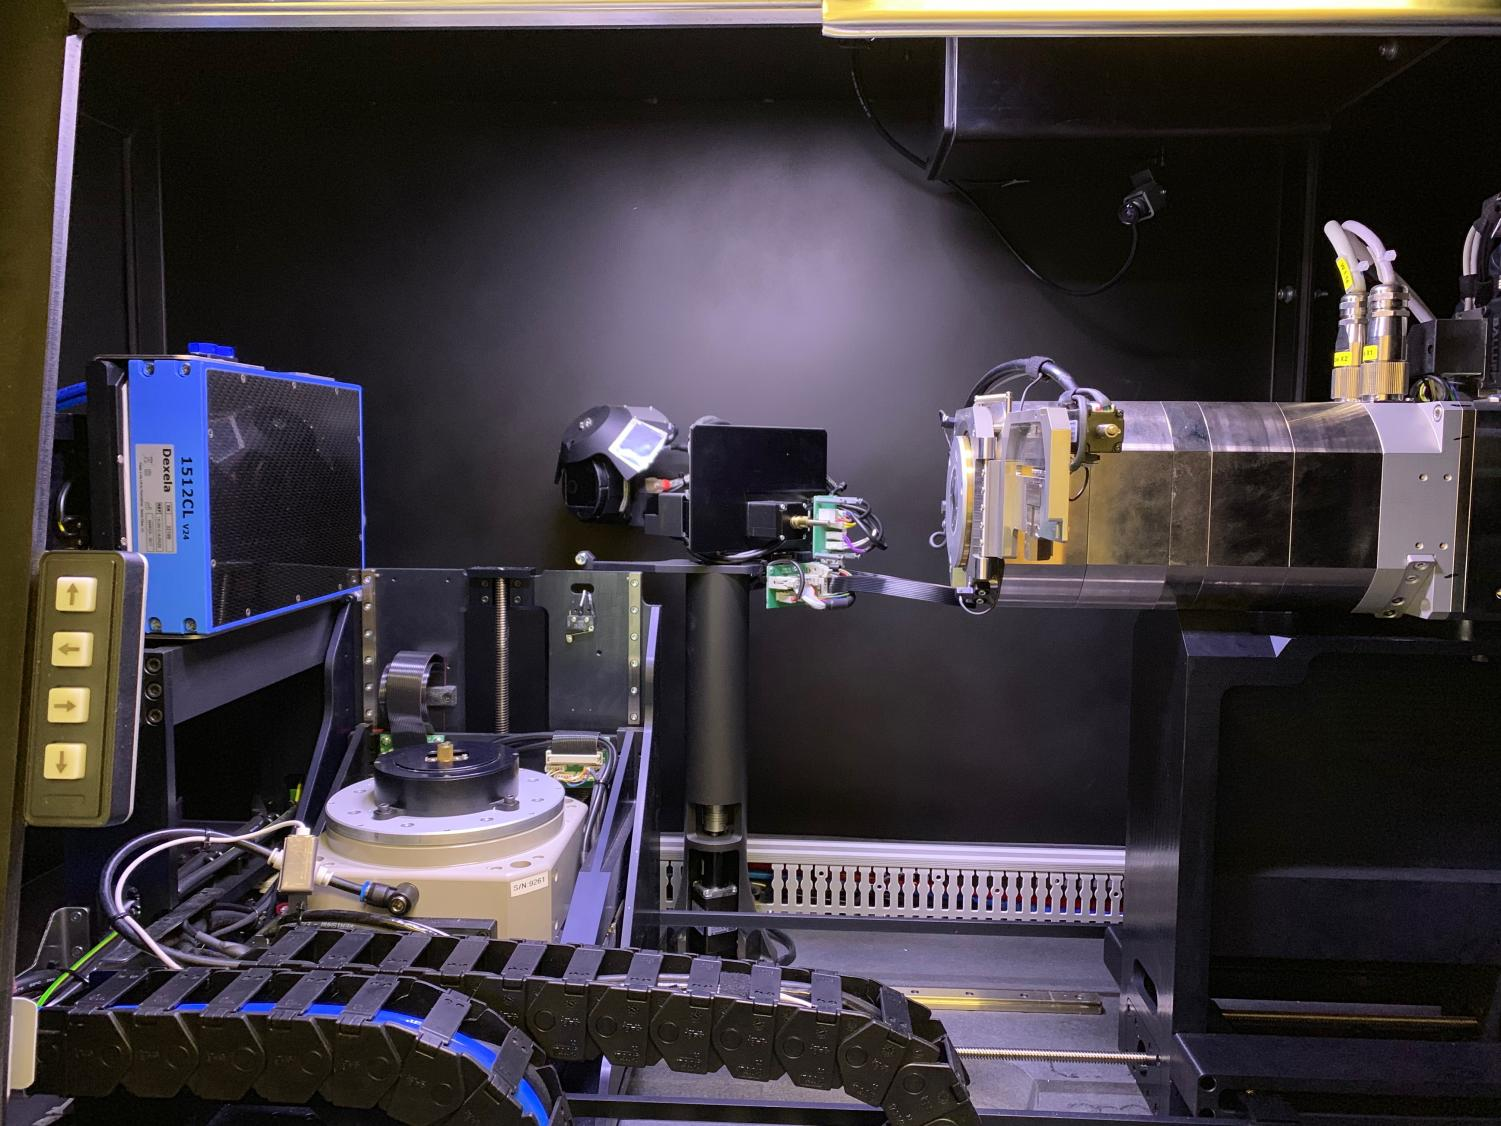 Inside view of the Micro CT scanner located in the Science III building.